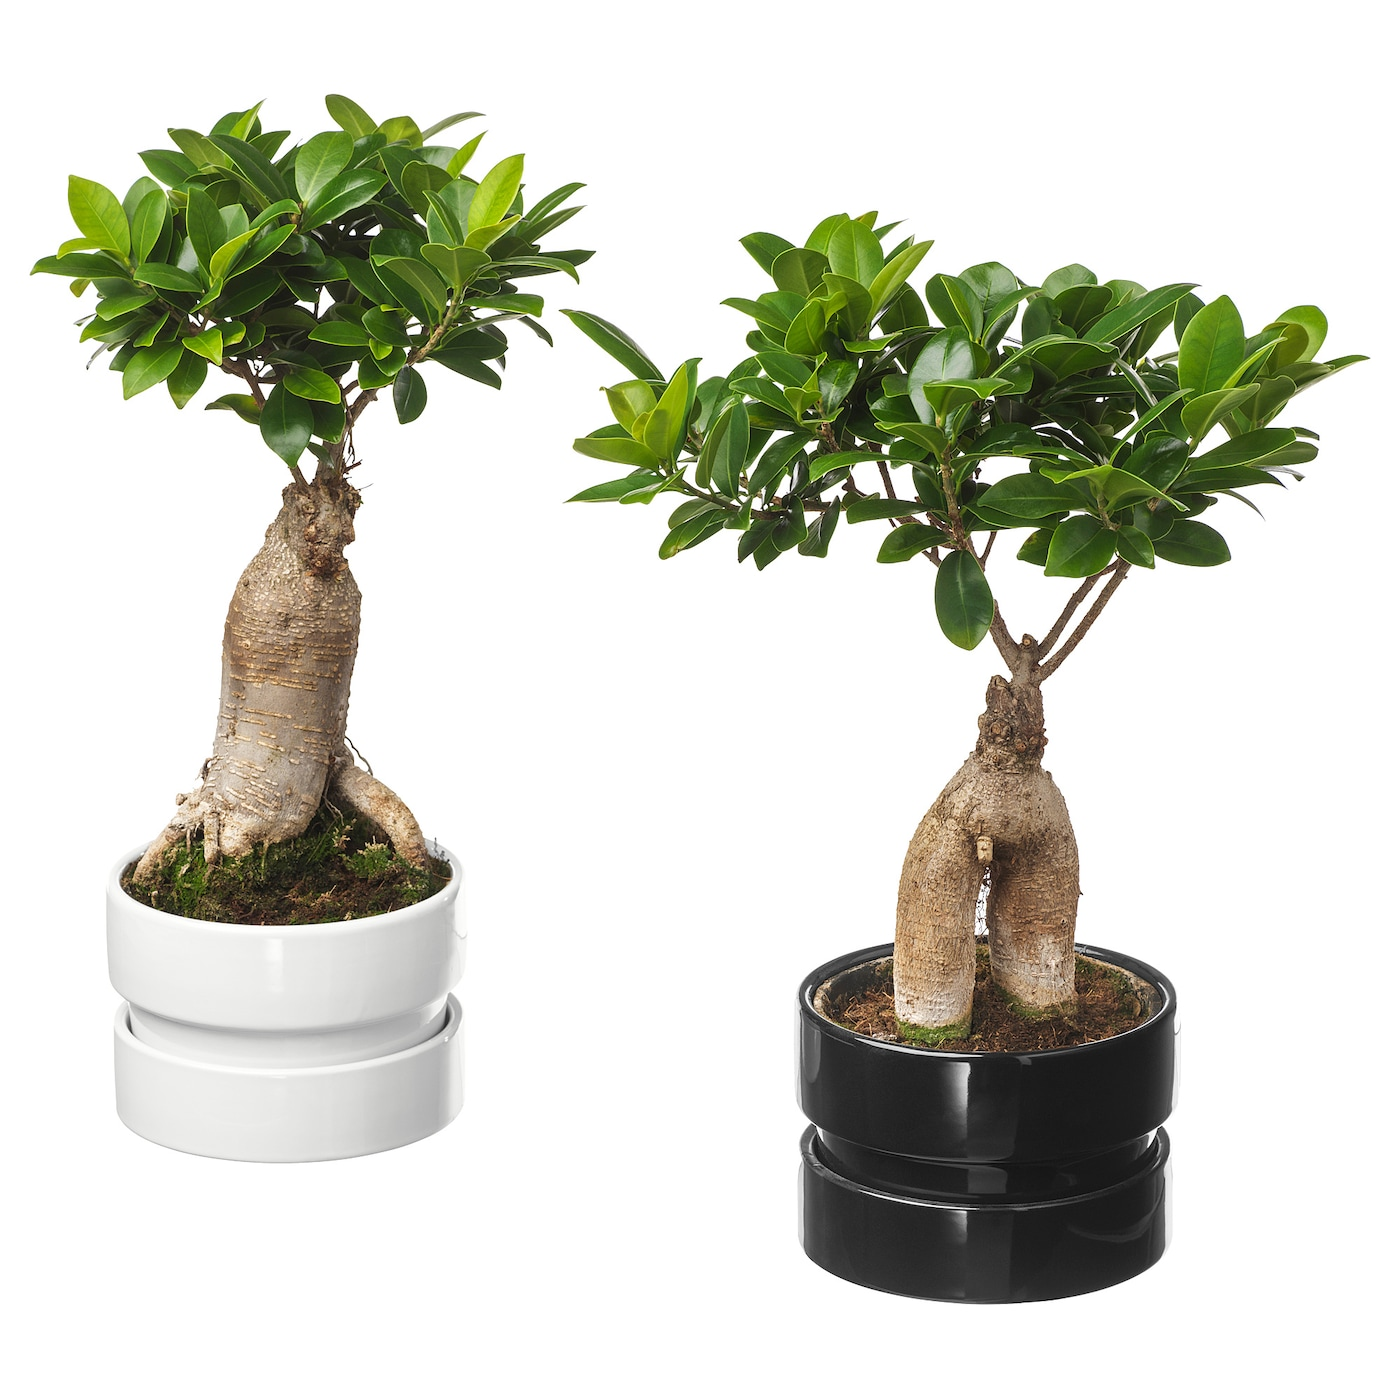 IKEA FICUS MICROCARPA GINSENG potted plant with pot